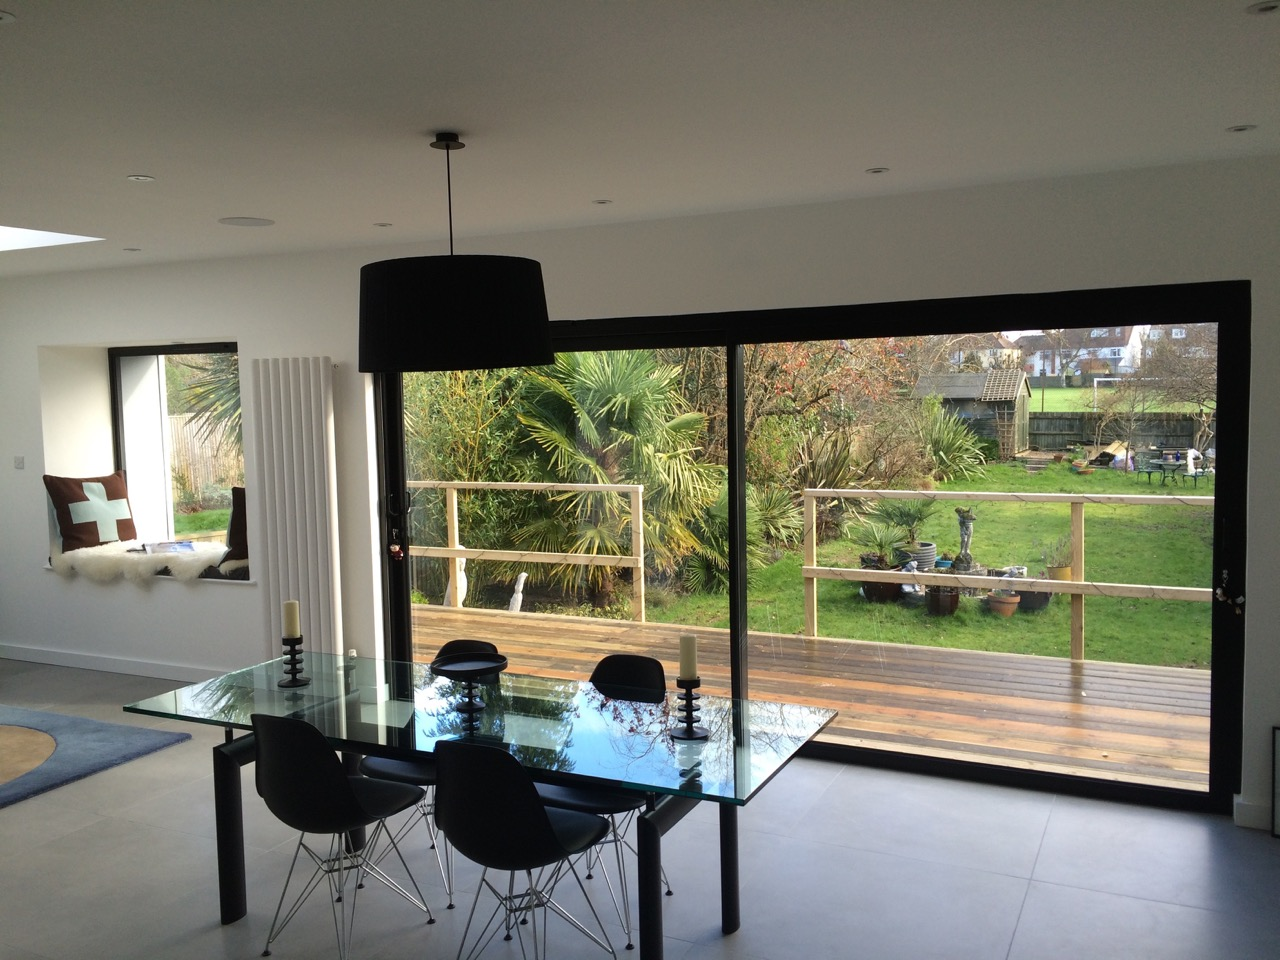 Aluminium sliding doors dwl windows doors conservatories black aluminium sliding patio doors and windows eventelaan Image collections